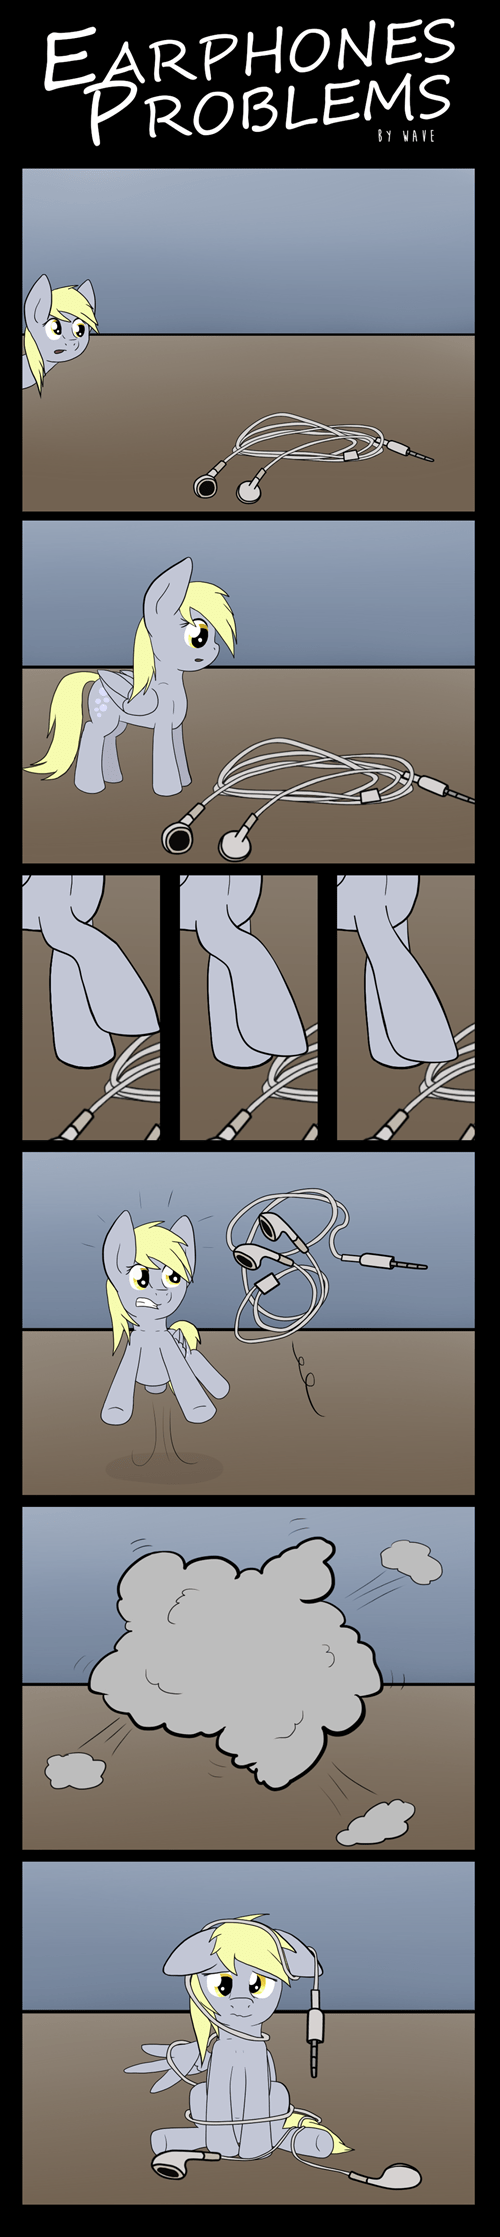 tangled derpy hooves earbuds - 8422705664